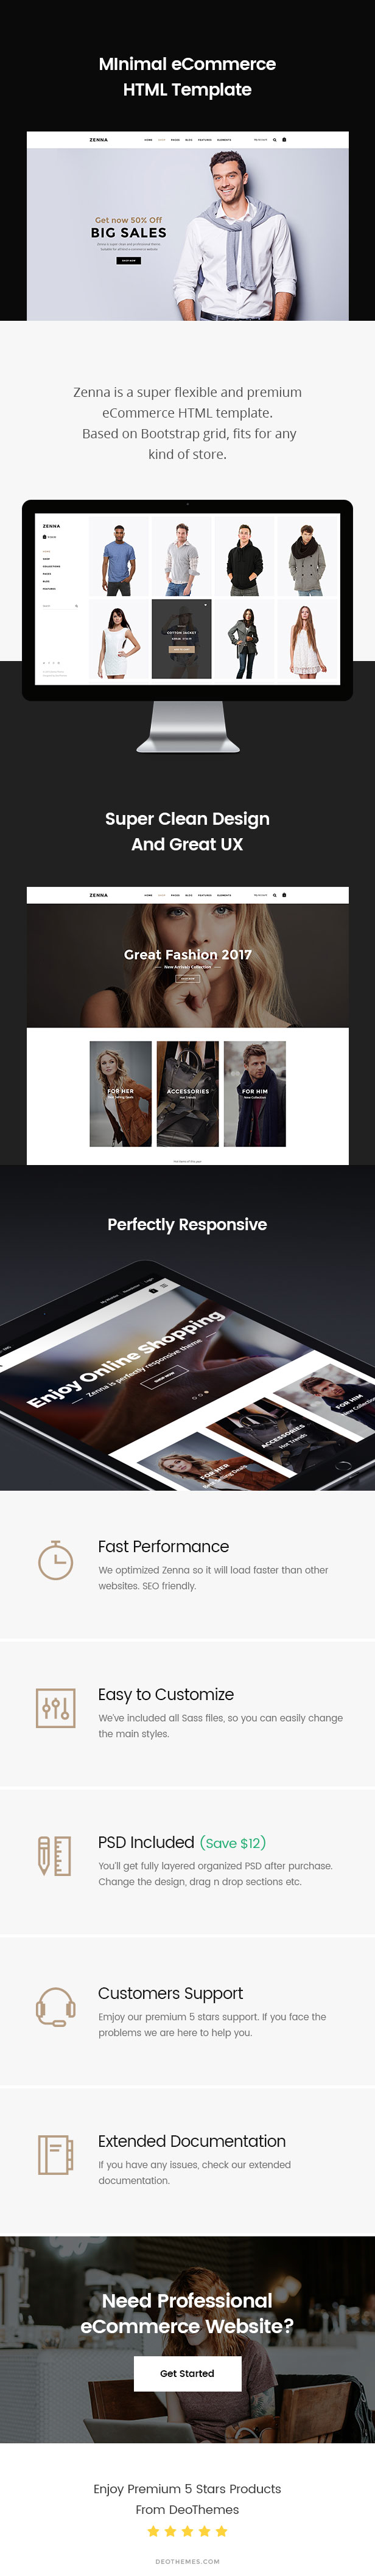 Zenna | Minimal E-commerce HTML Template by DeoThemes | ThemeForest